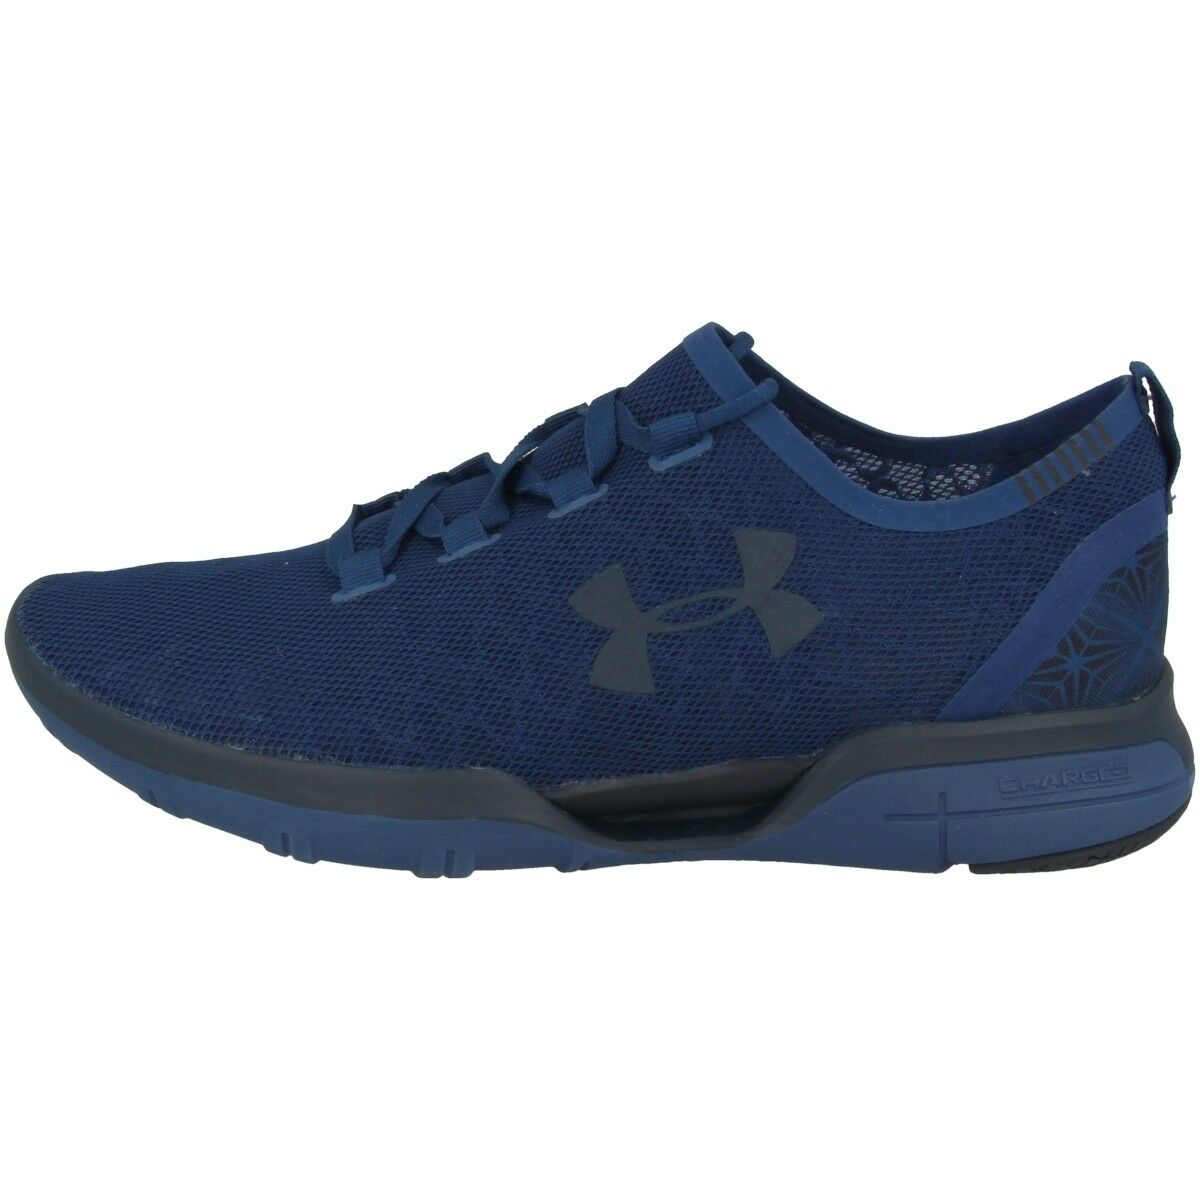 Under Armour Charged coolswitch RUN Chaussures Hommes Chaussures 1285666-997 De Course Sneaker 1285666-997 Chaussures 3a00c6